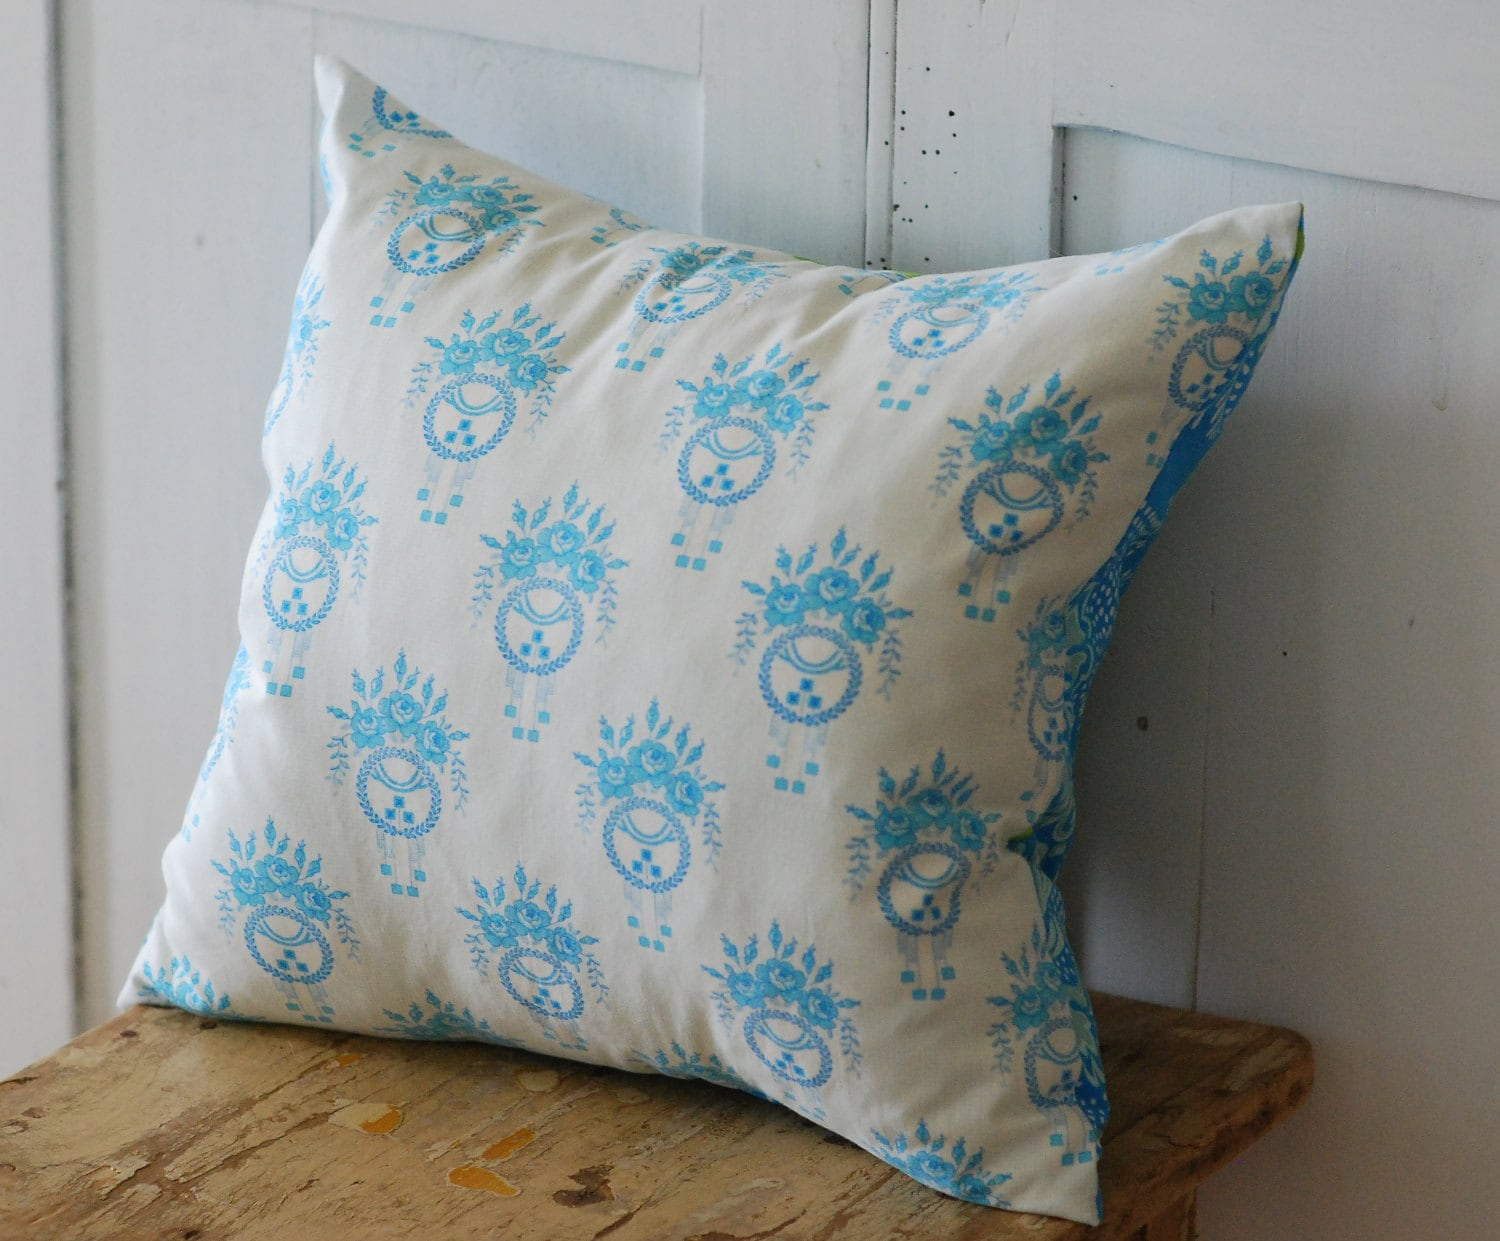 Shabby Chic Toss Pillows : Shabby Chic Pillow Cover Decorative Pillows by KenilworthPlace